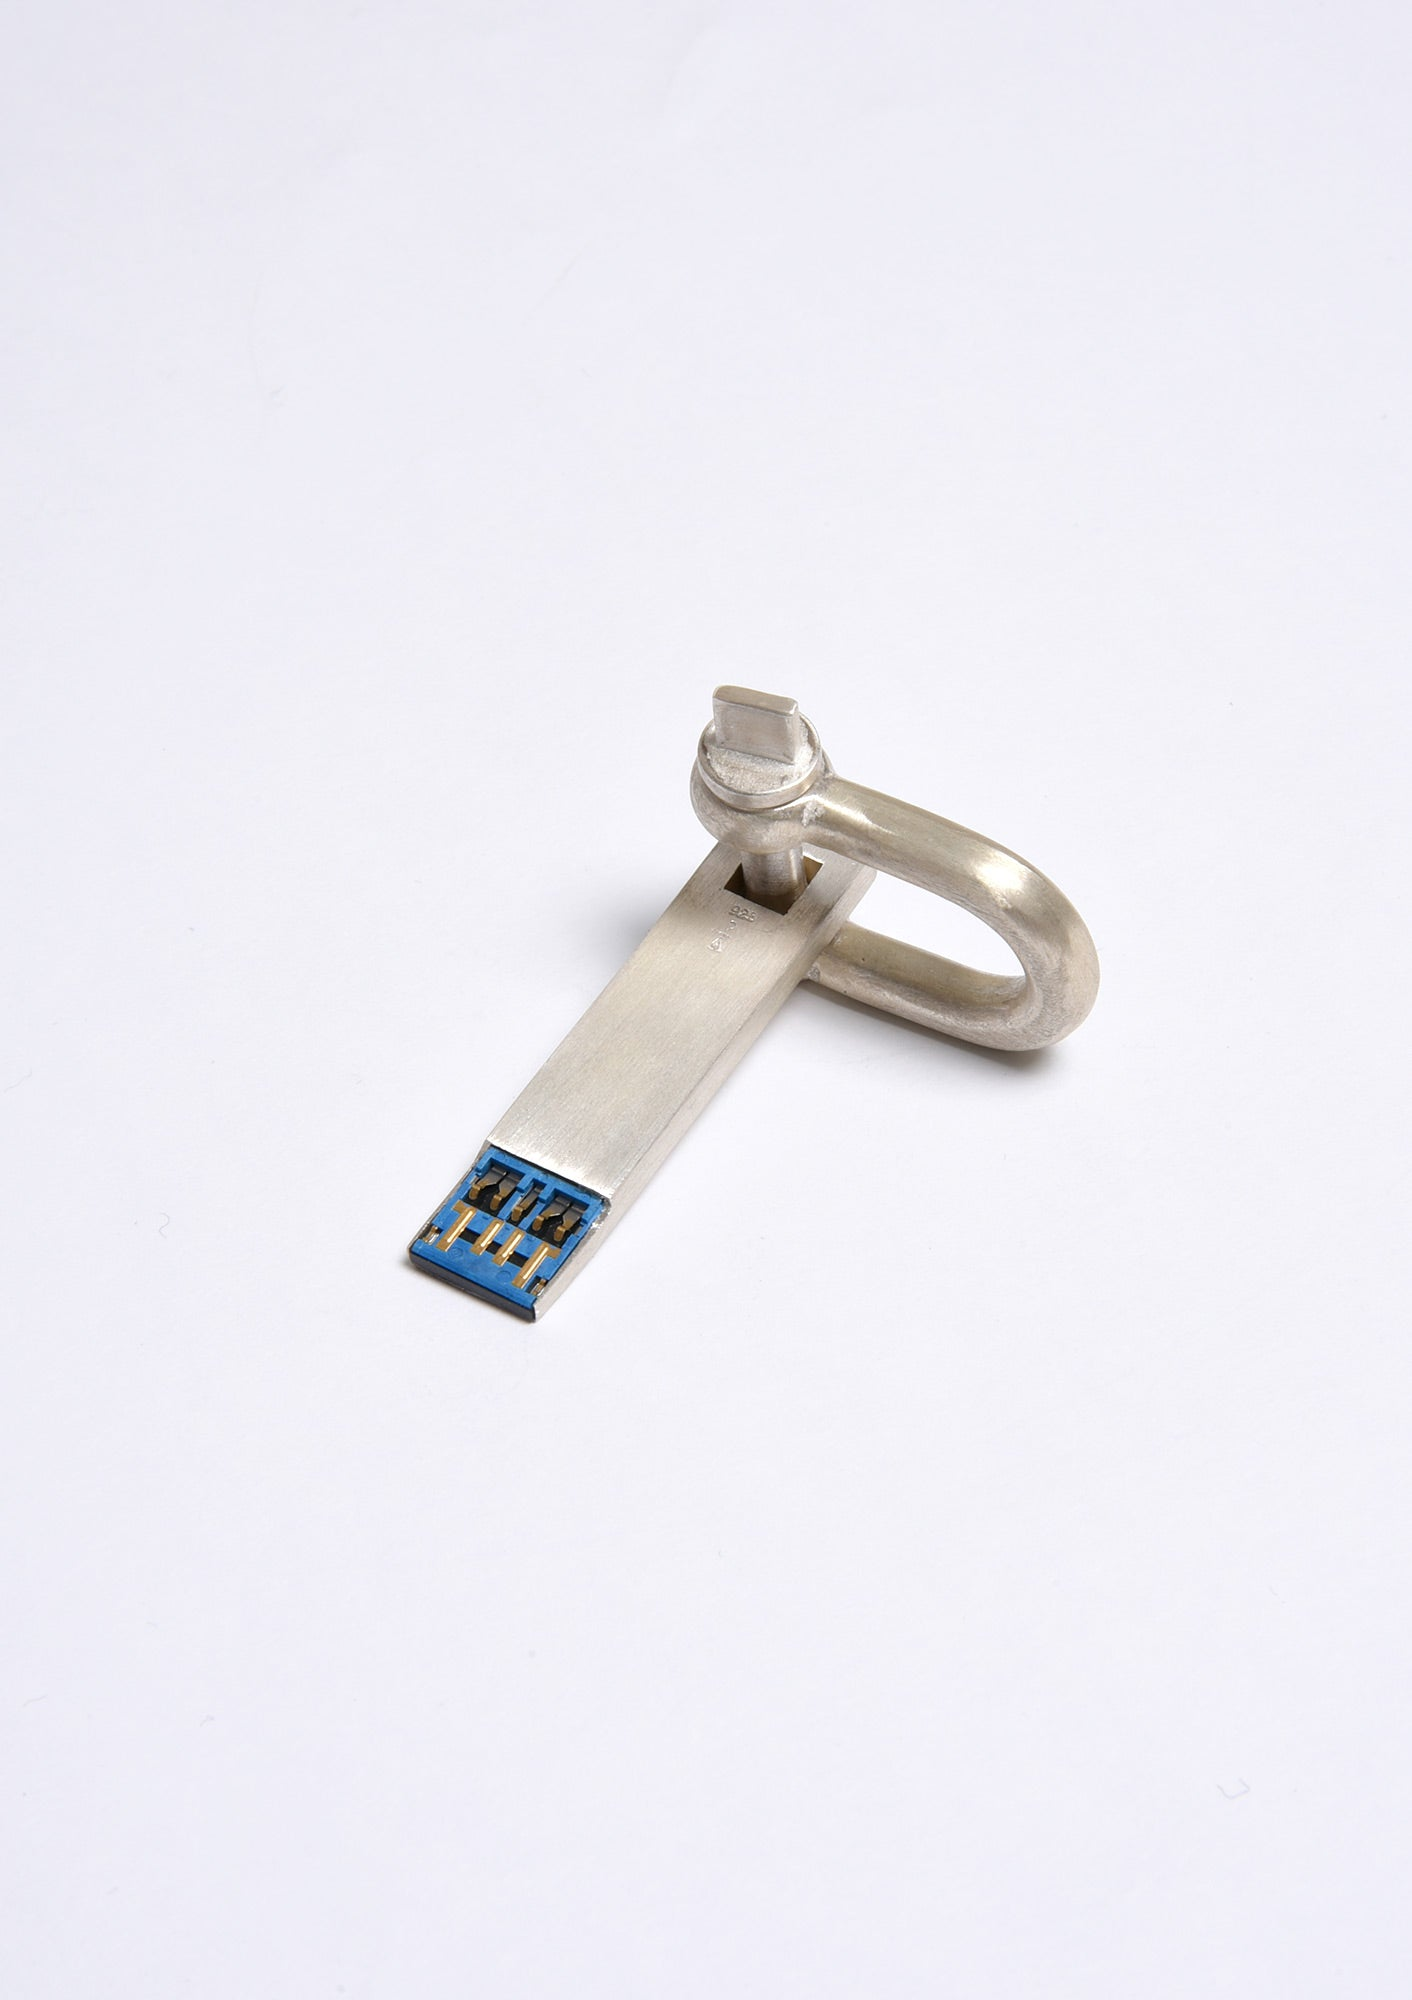 Parts of Four USB Charm on U-Bolt (MA)